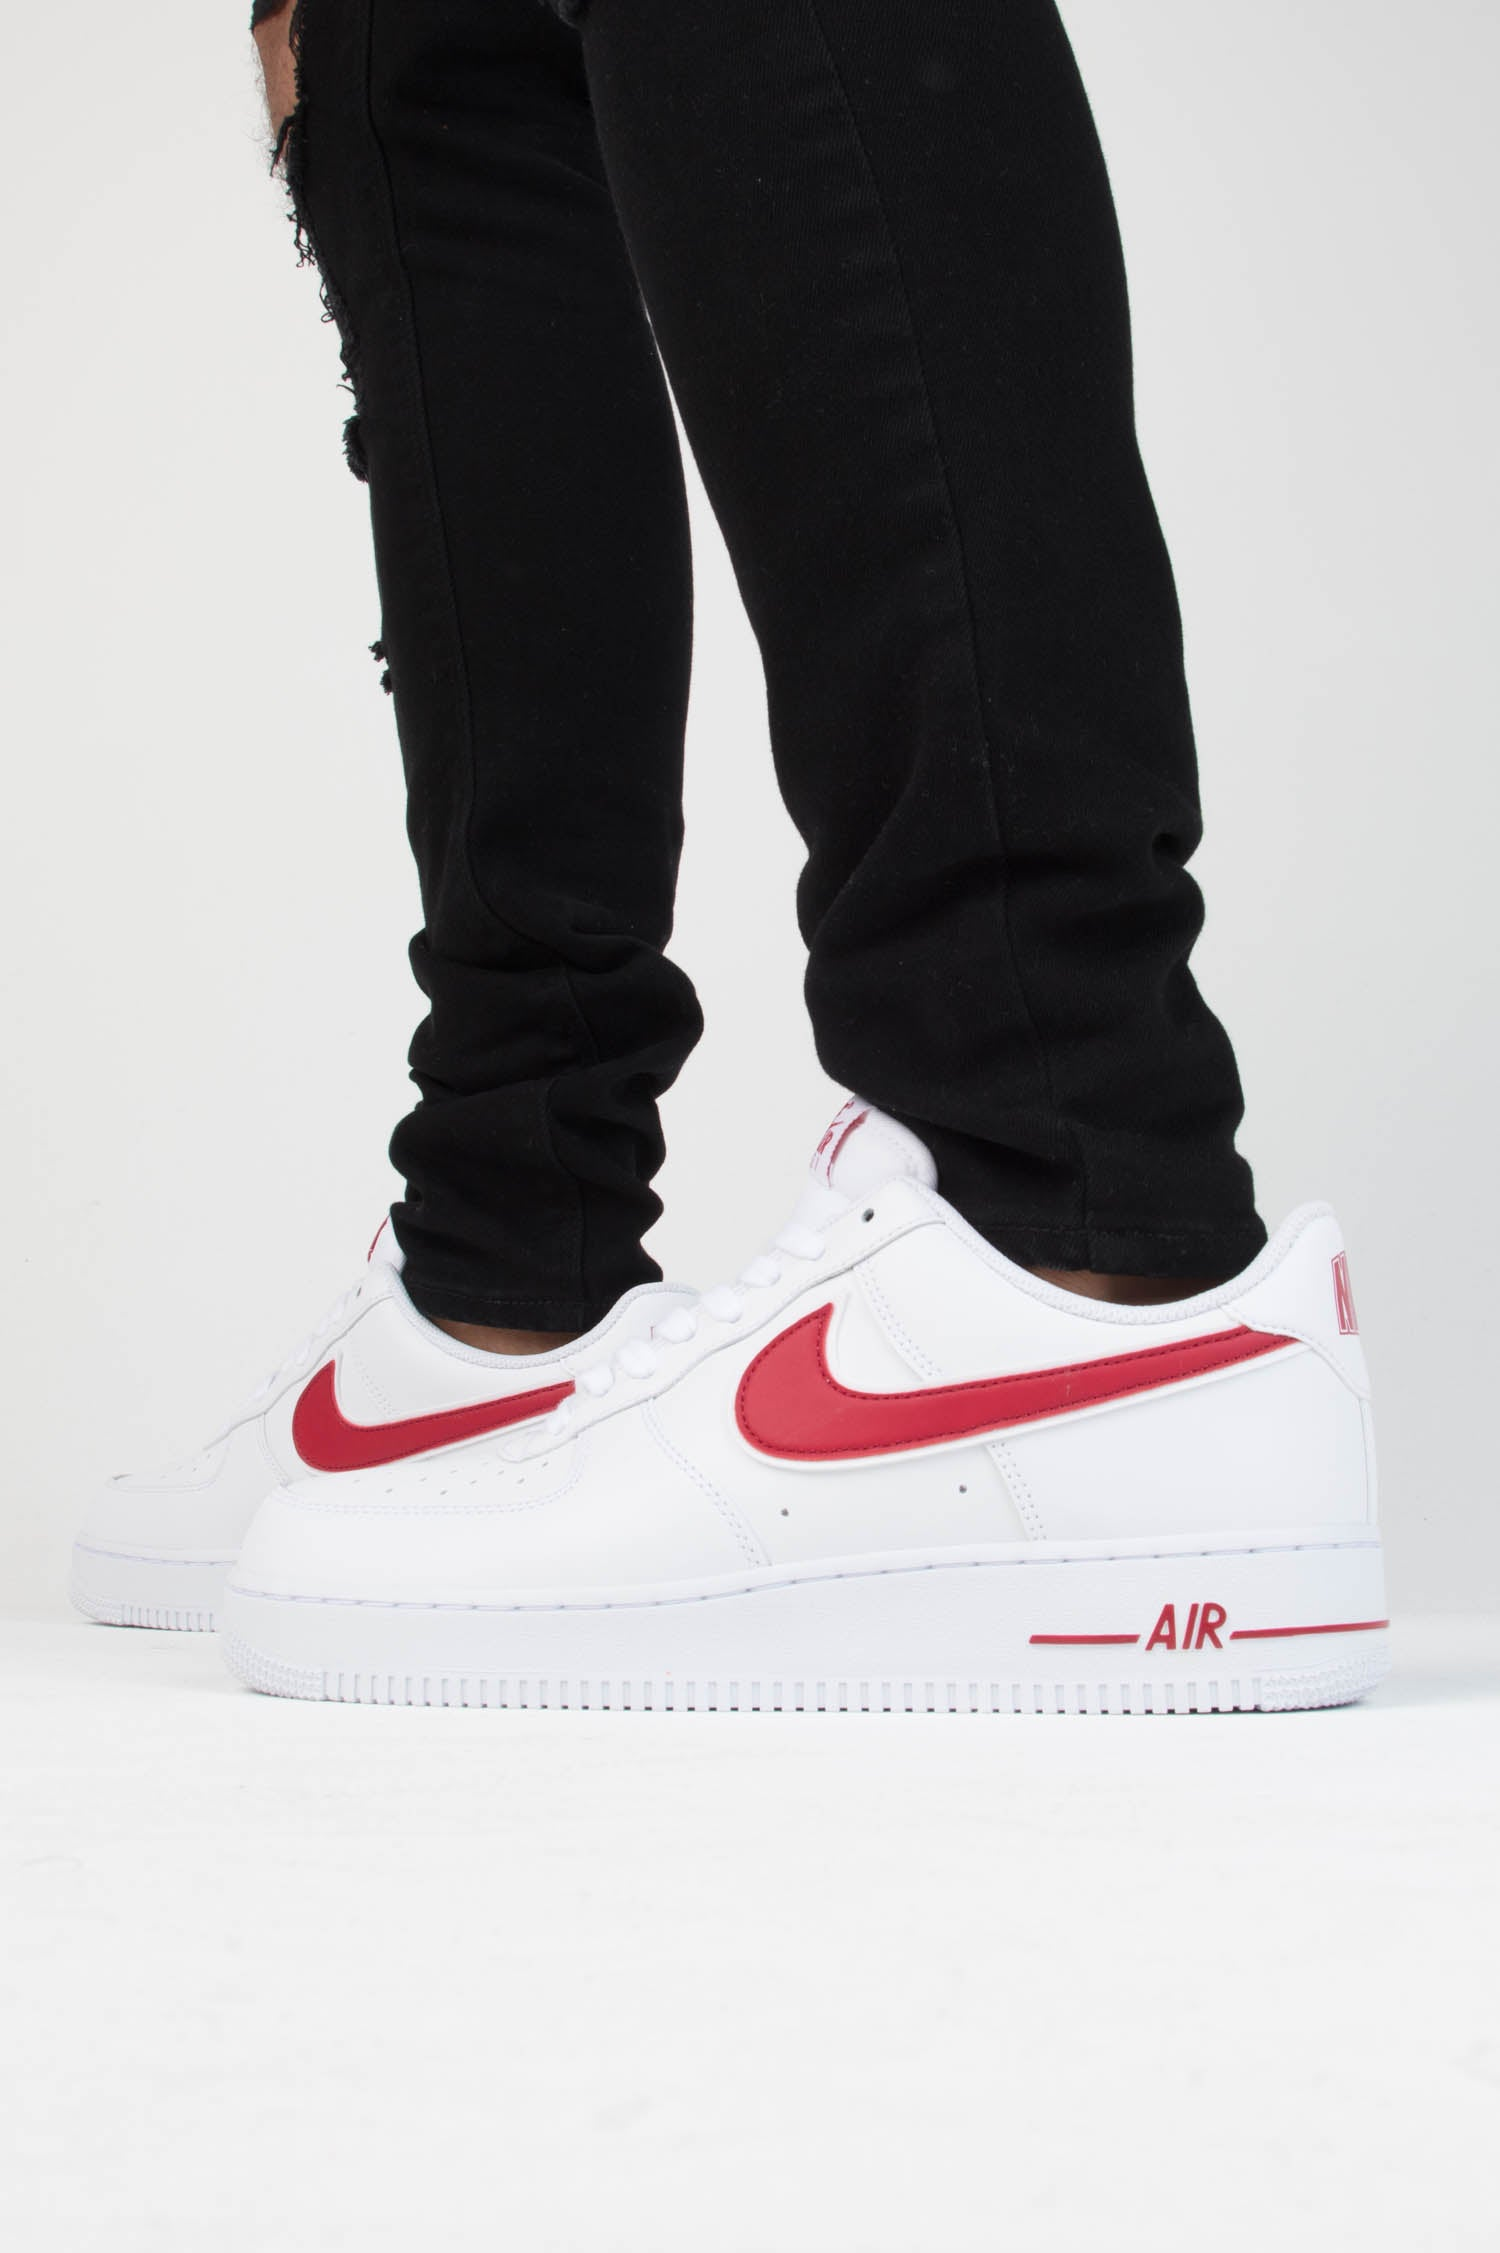 Nike Air Force 1 '07 3 White Gym Red | Footshop